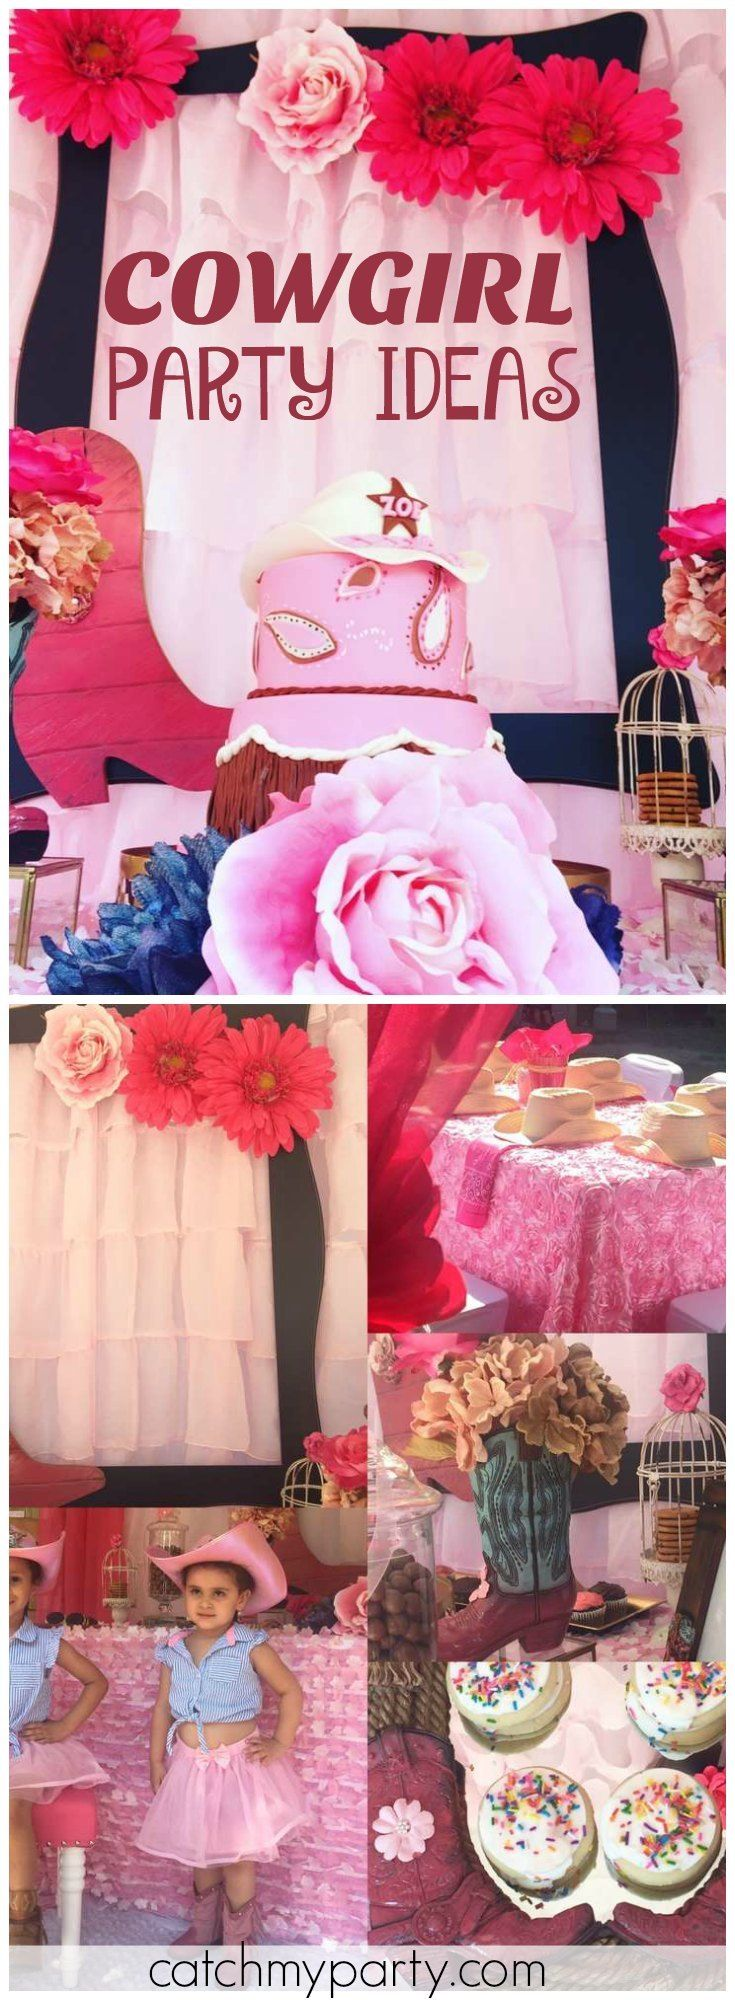 Check out this amazing brown and pink cowgirl birthday party! See more party ideas at Catchmyparty.com!